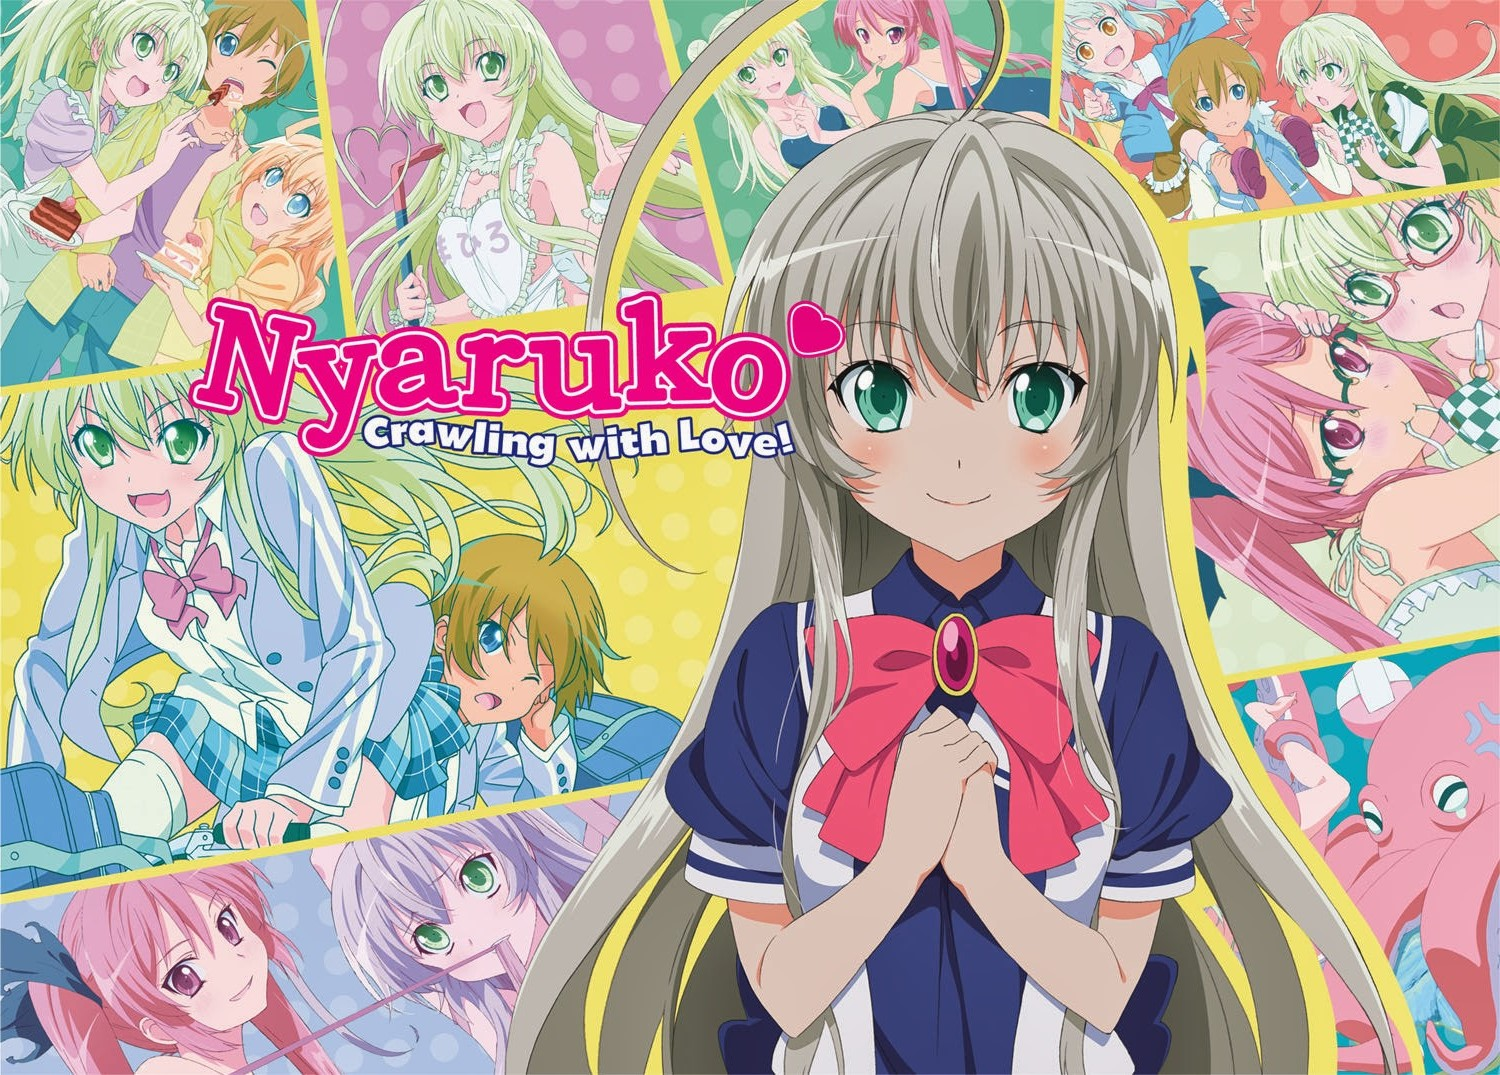 nyaruko-crawling-with-love-slipcase